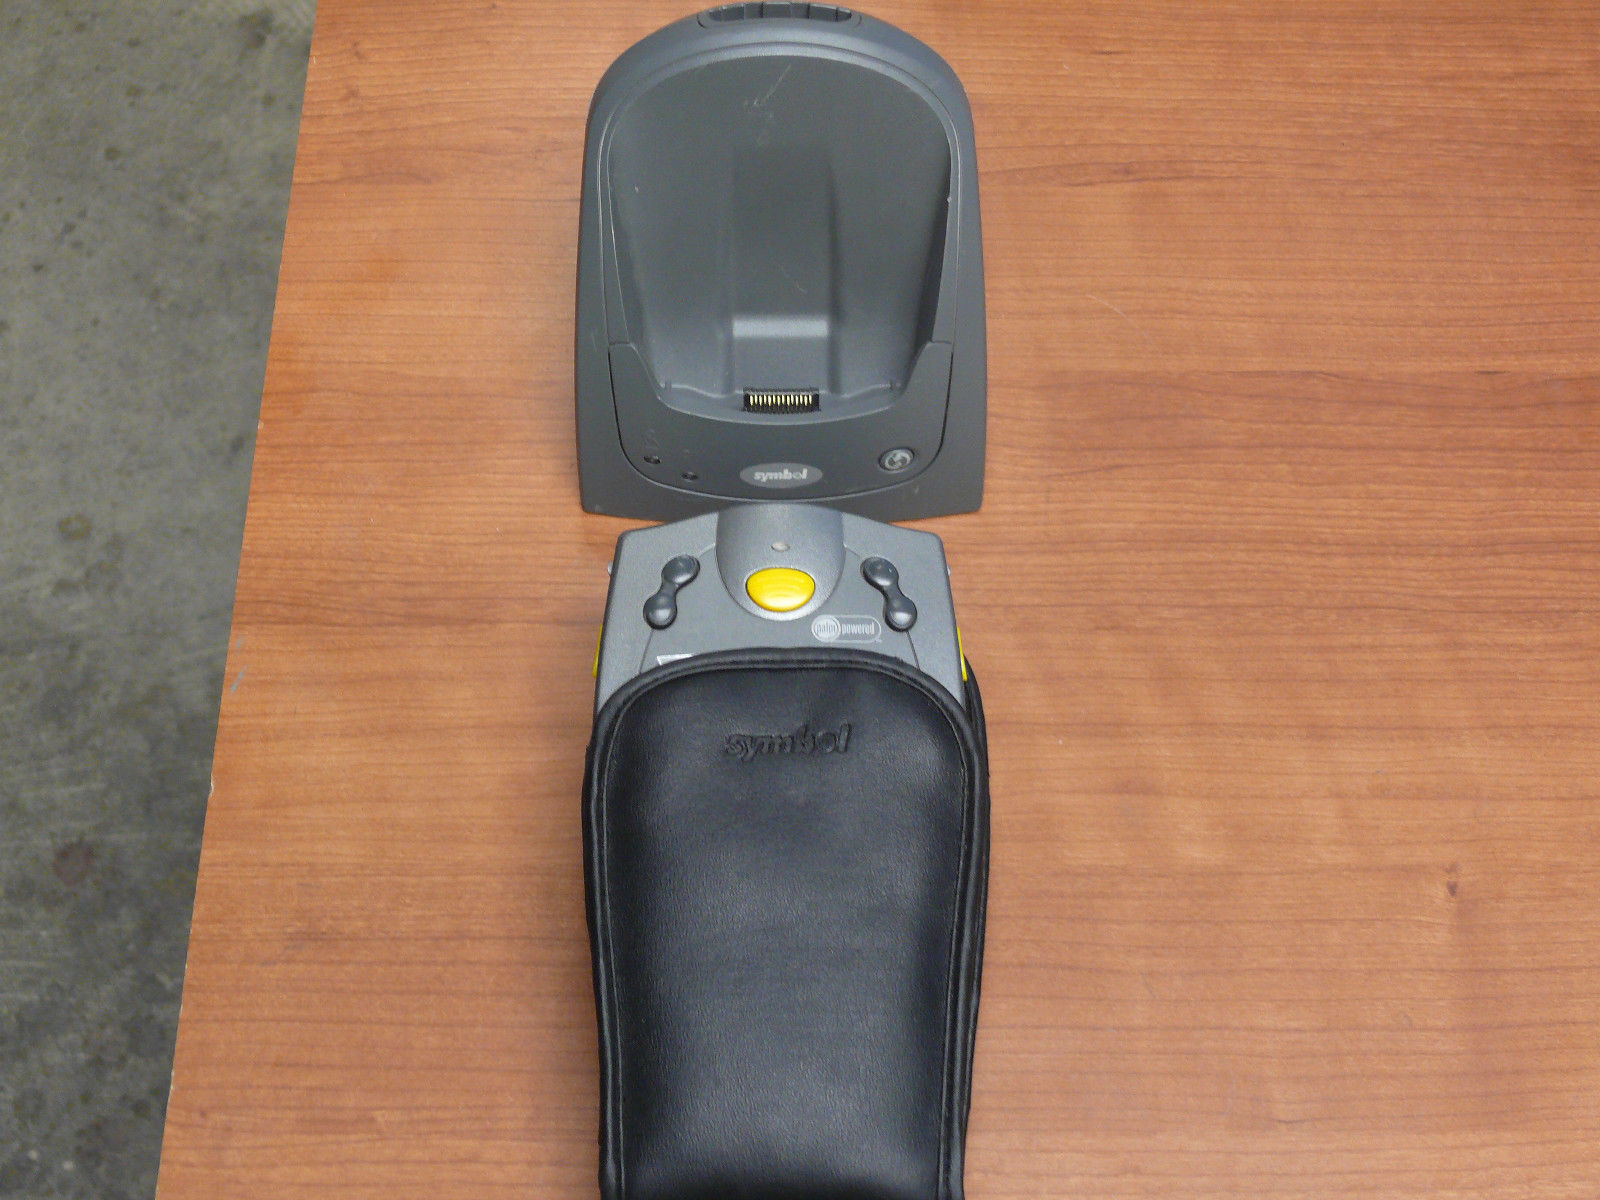 Symbol N410 Hand Held Laser Barcode Scanner And 50 Similar Items